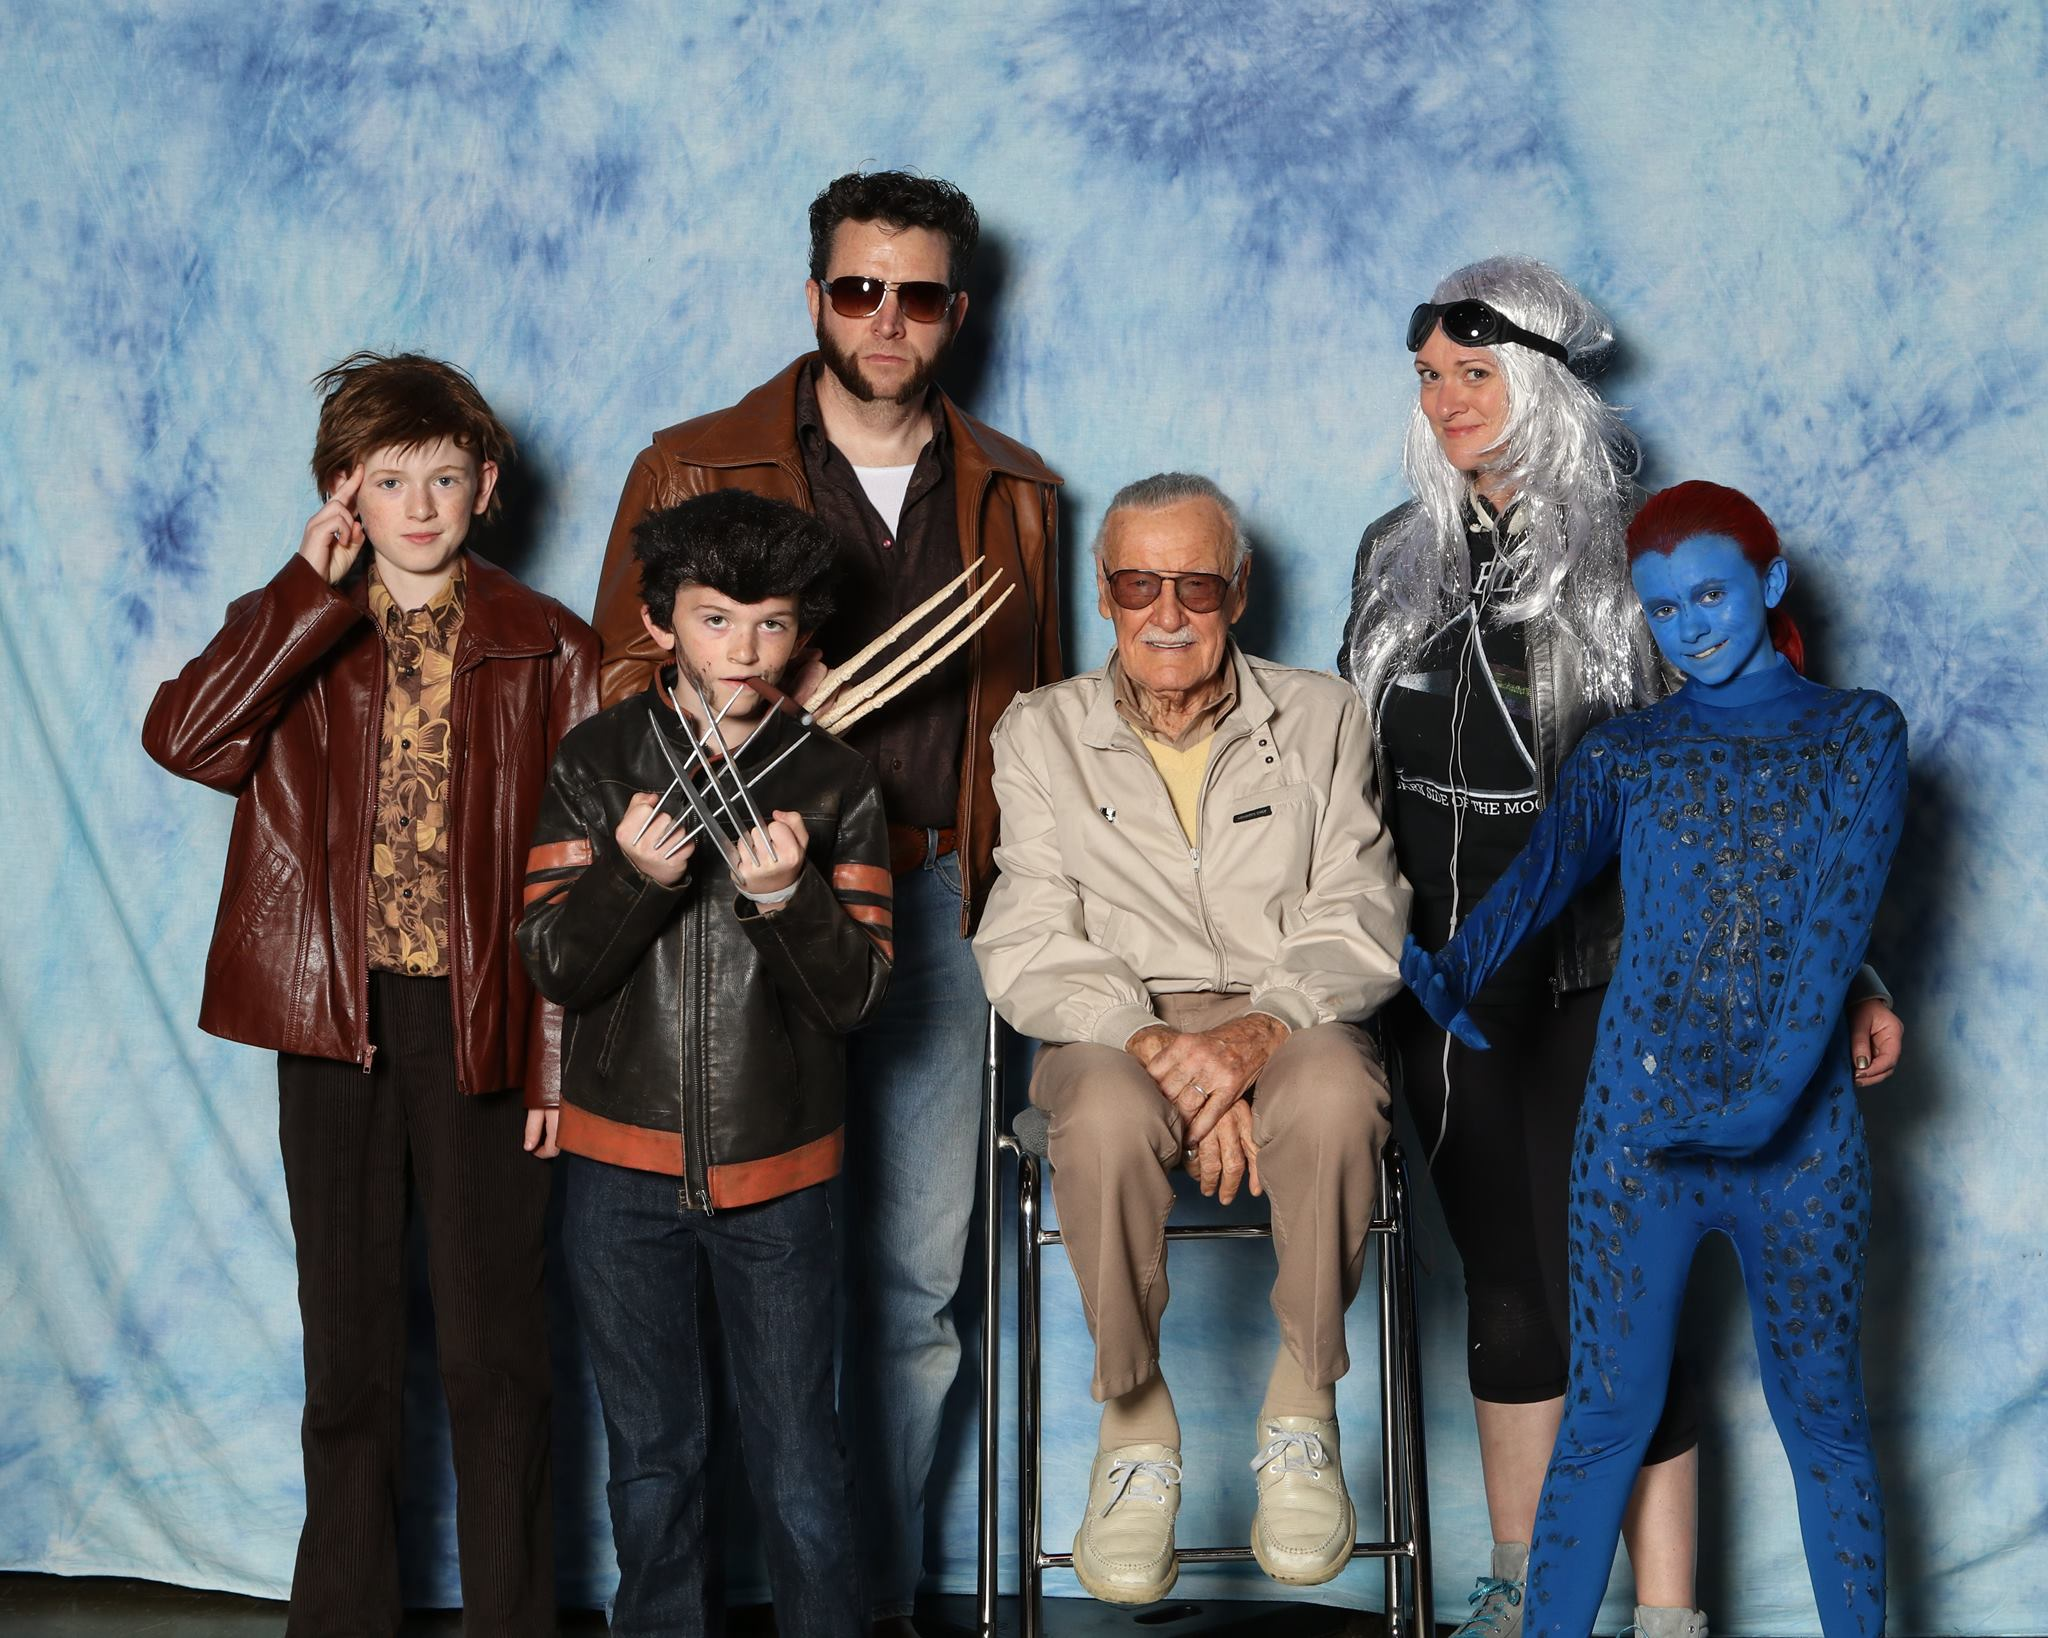 THE DONNELLY FAMILY COSPLAYS AT THE FAN EXPO, TAKING A PHOTOGRAPH WITH STAN LEE (MIDDLE).  Photo courtesy of Michelle Donnelly.